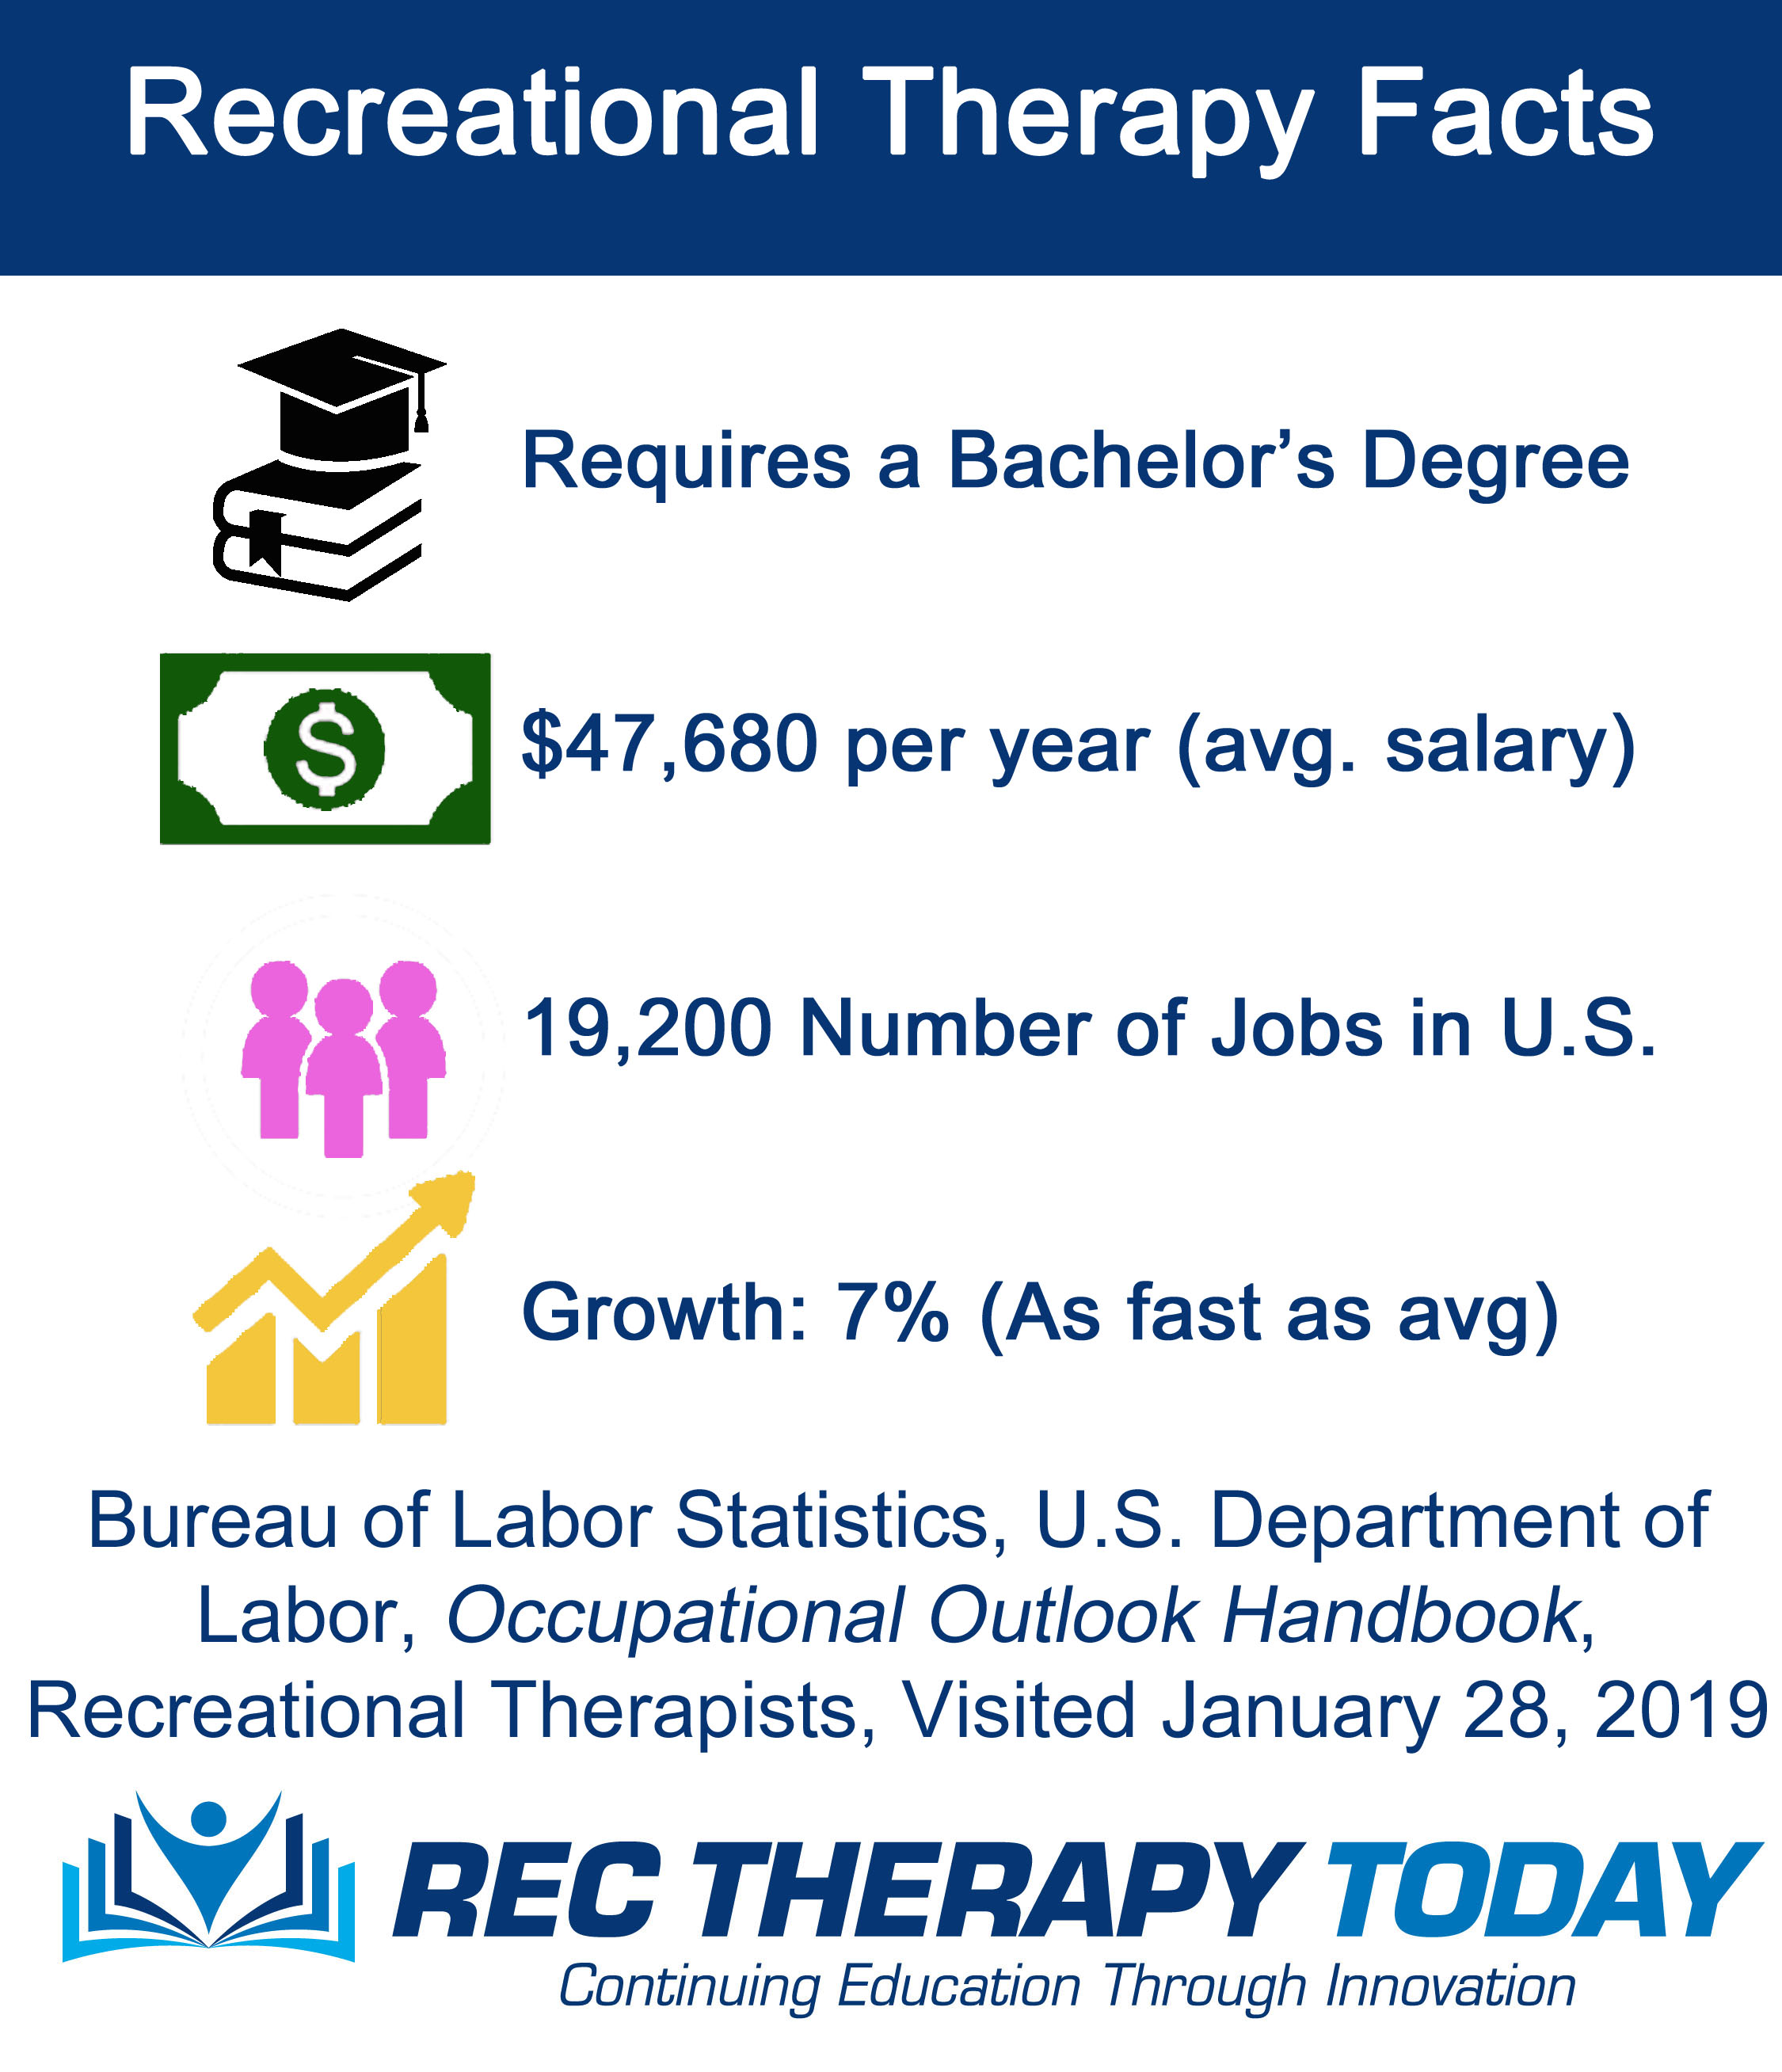 Recreational Therapy Facts